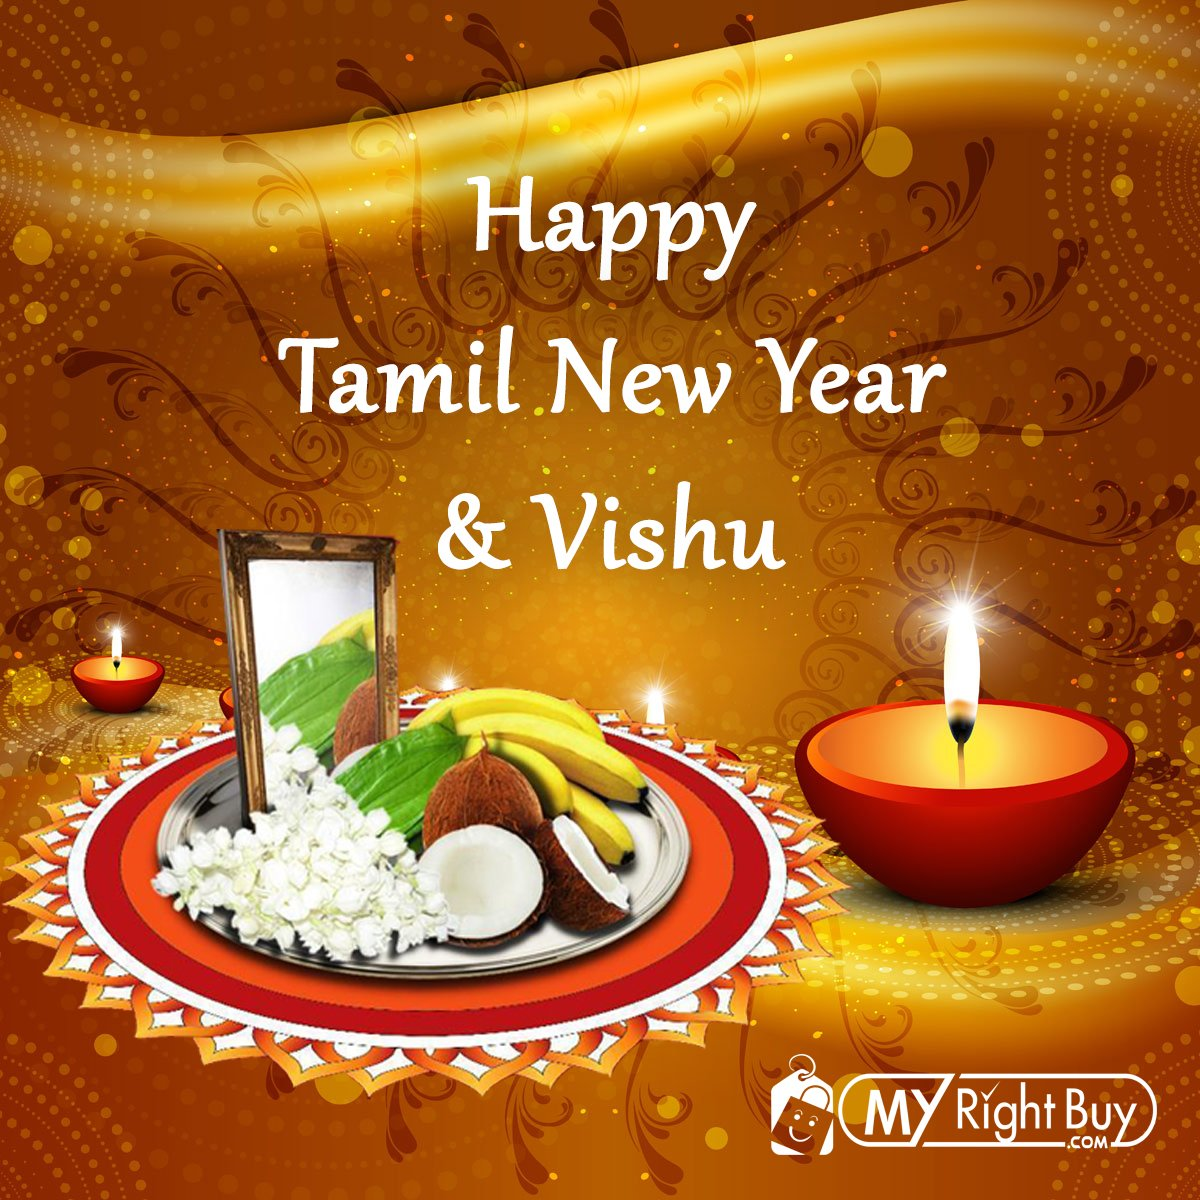 Myrightbuy on twitter happy tamil new year vishu newyear myrightbuy on twitter happy tamil new year vishu newyear tamil vishu tamilputhandu vishuashamsagal kristyandbryce Image collections